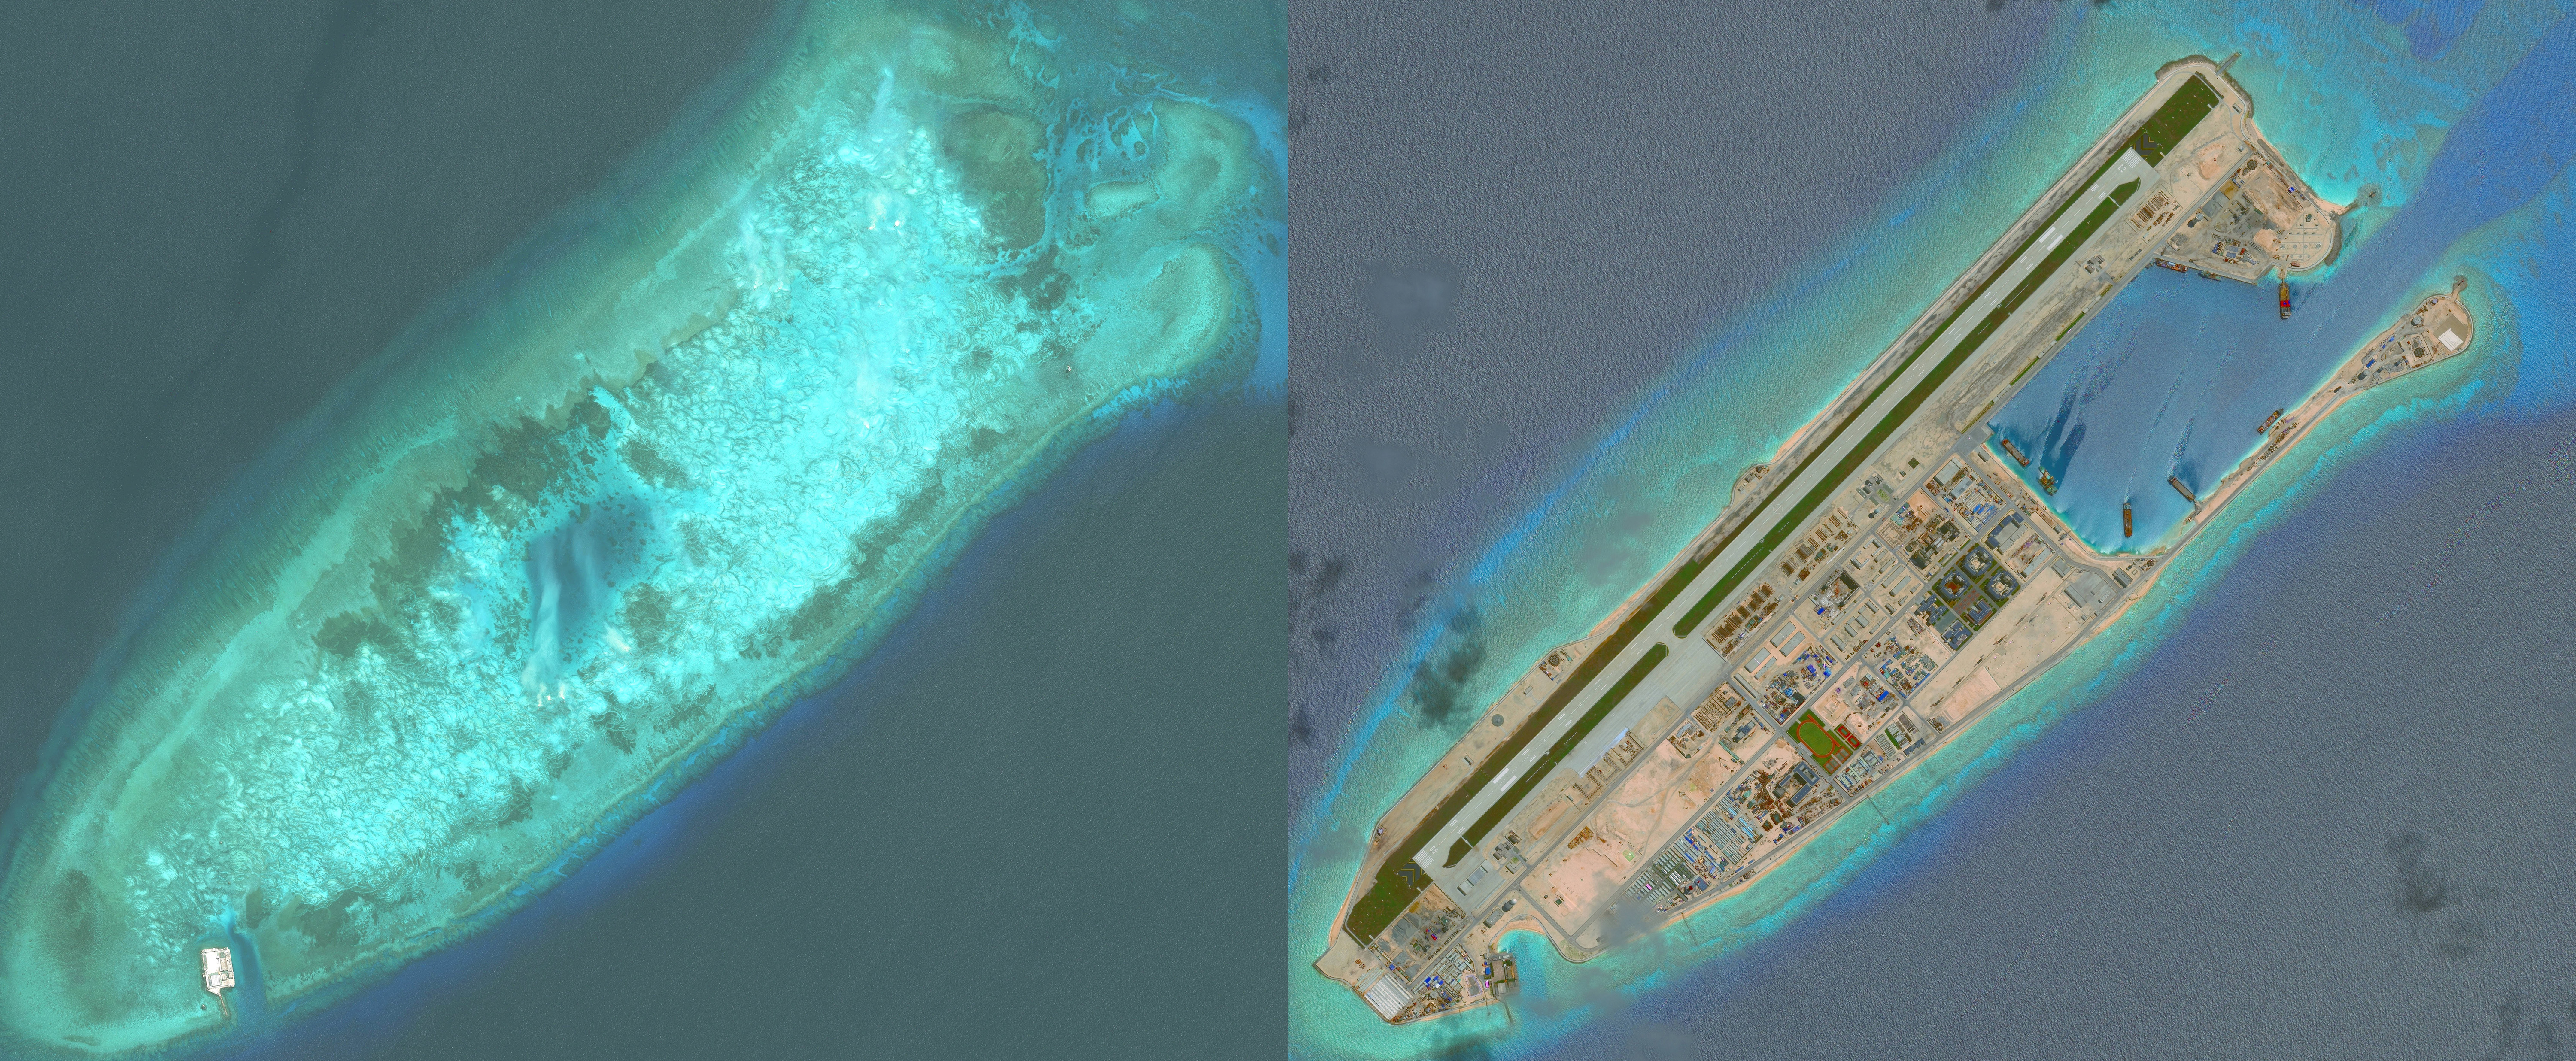 DigitalGlobe overview imagery comparing Fiery Cross Reef from May 31, 2014, to June 3, 2016. Fiery Cross is located in the western part of the Spratly Islands group.